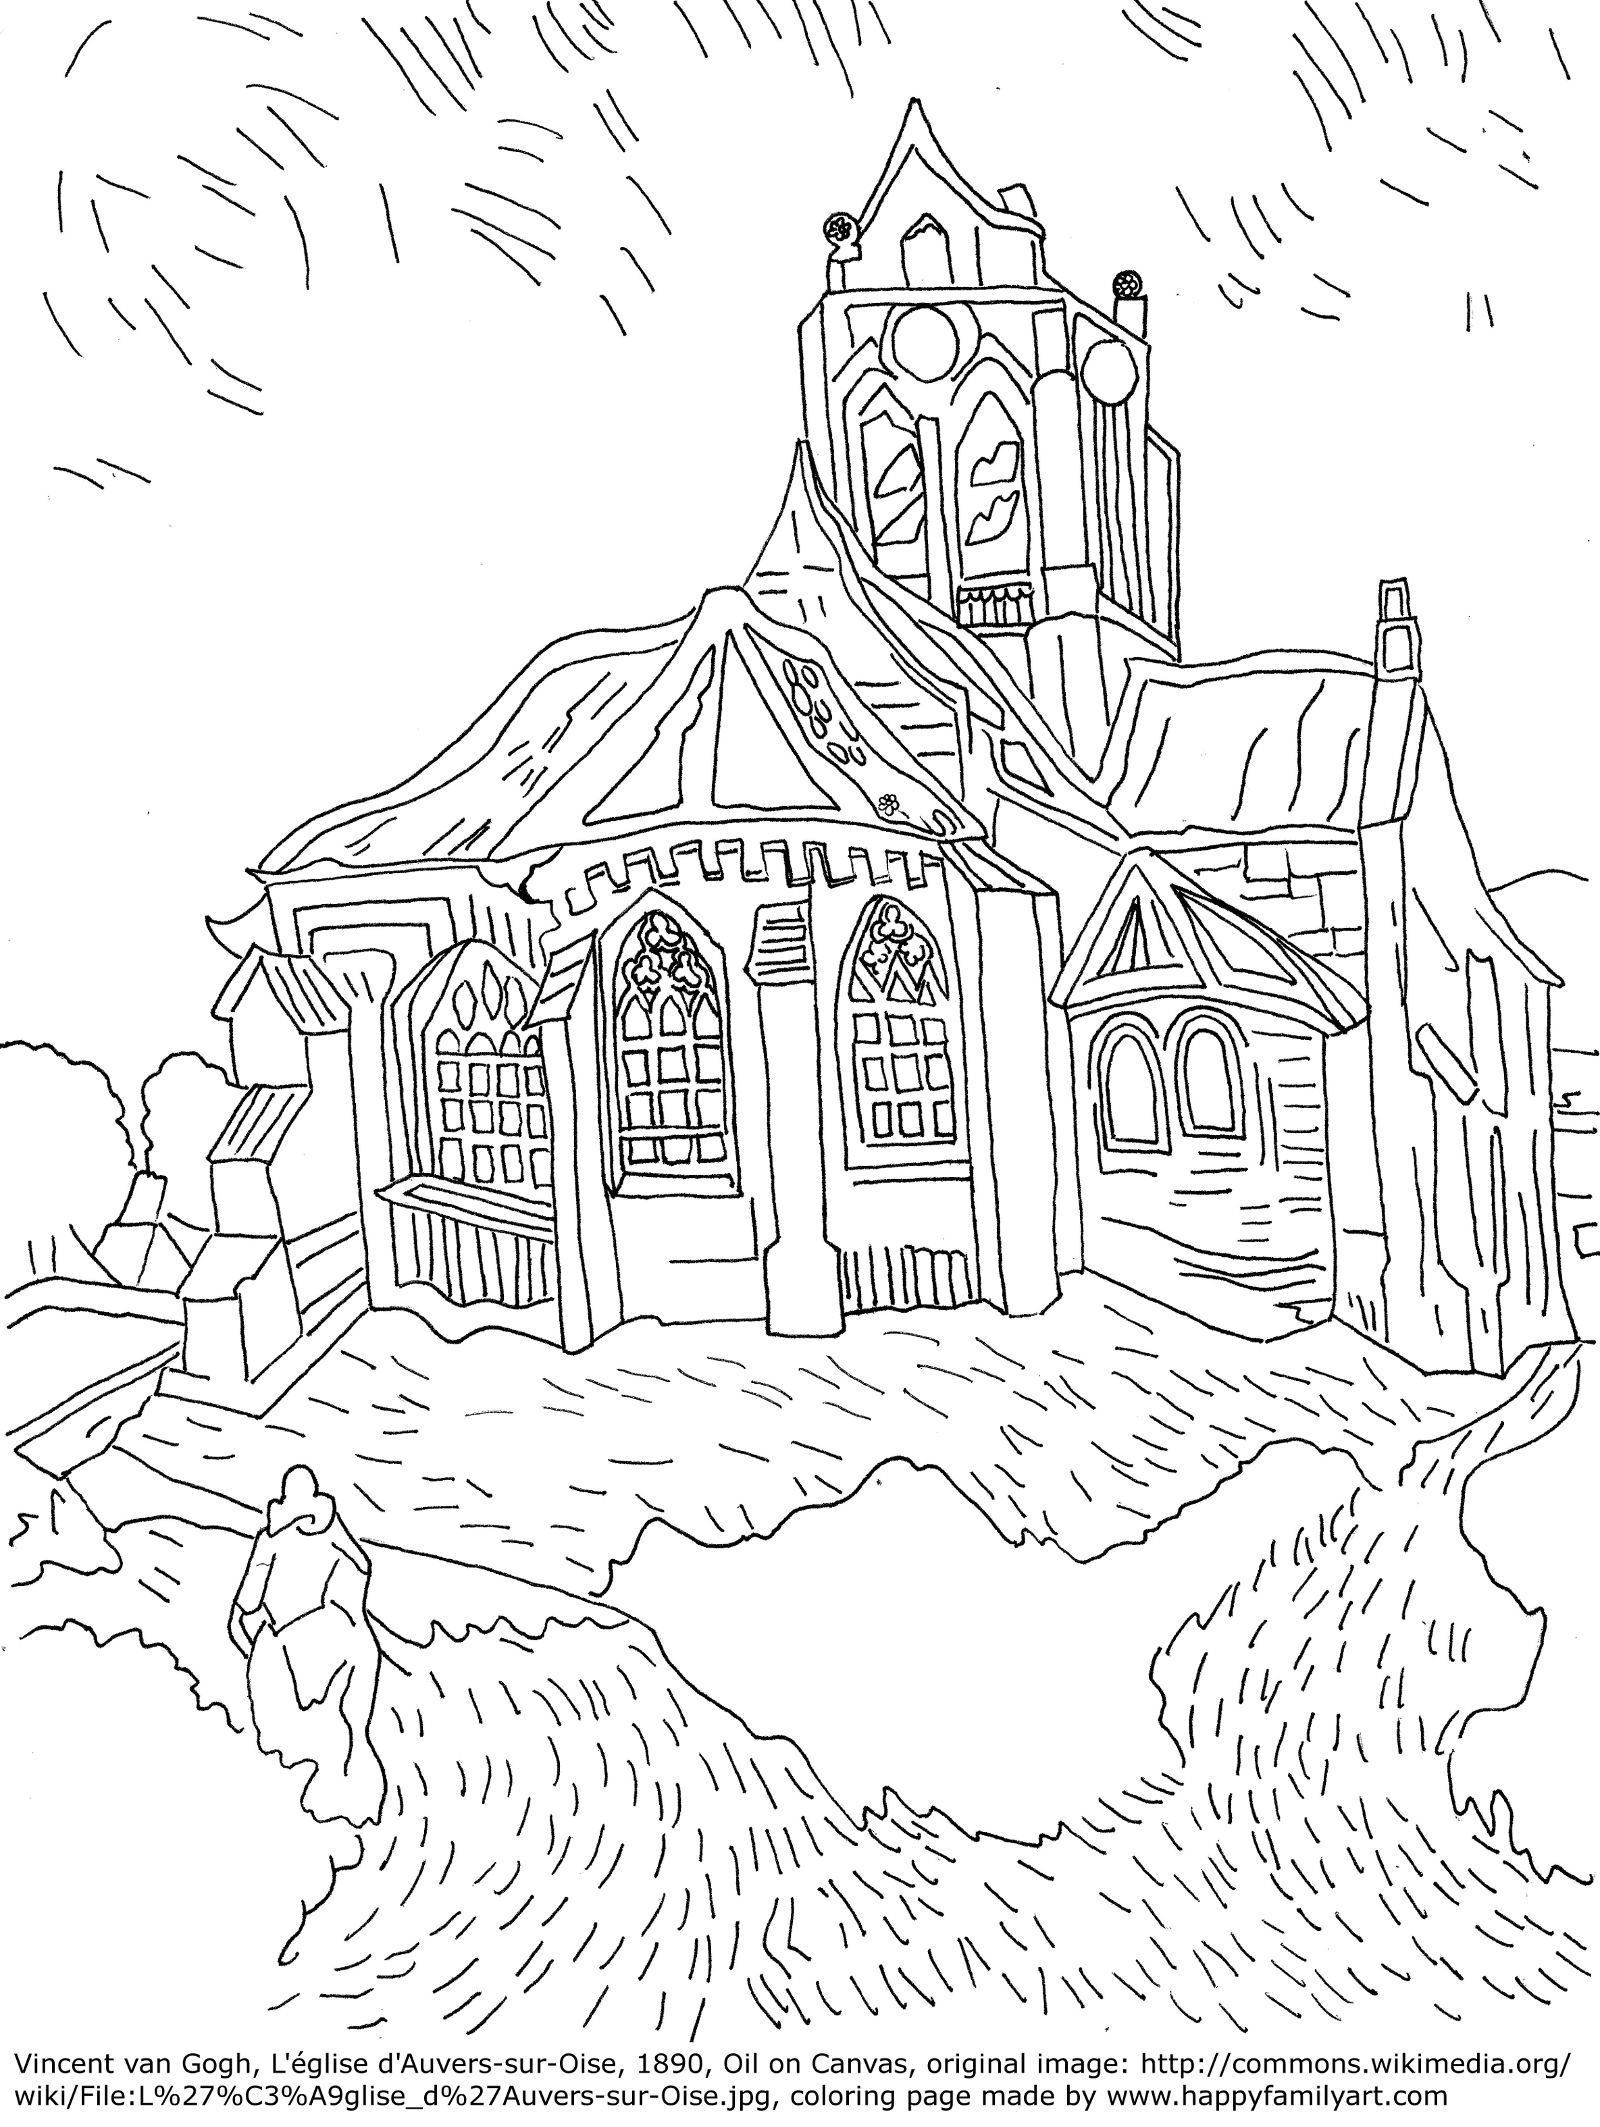 Famous Paintings Coloring Pages Please Make Sure To Know